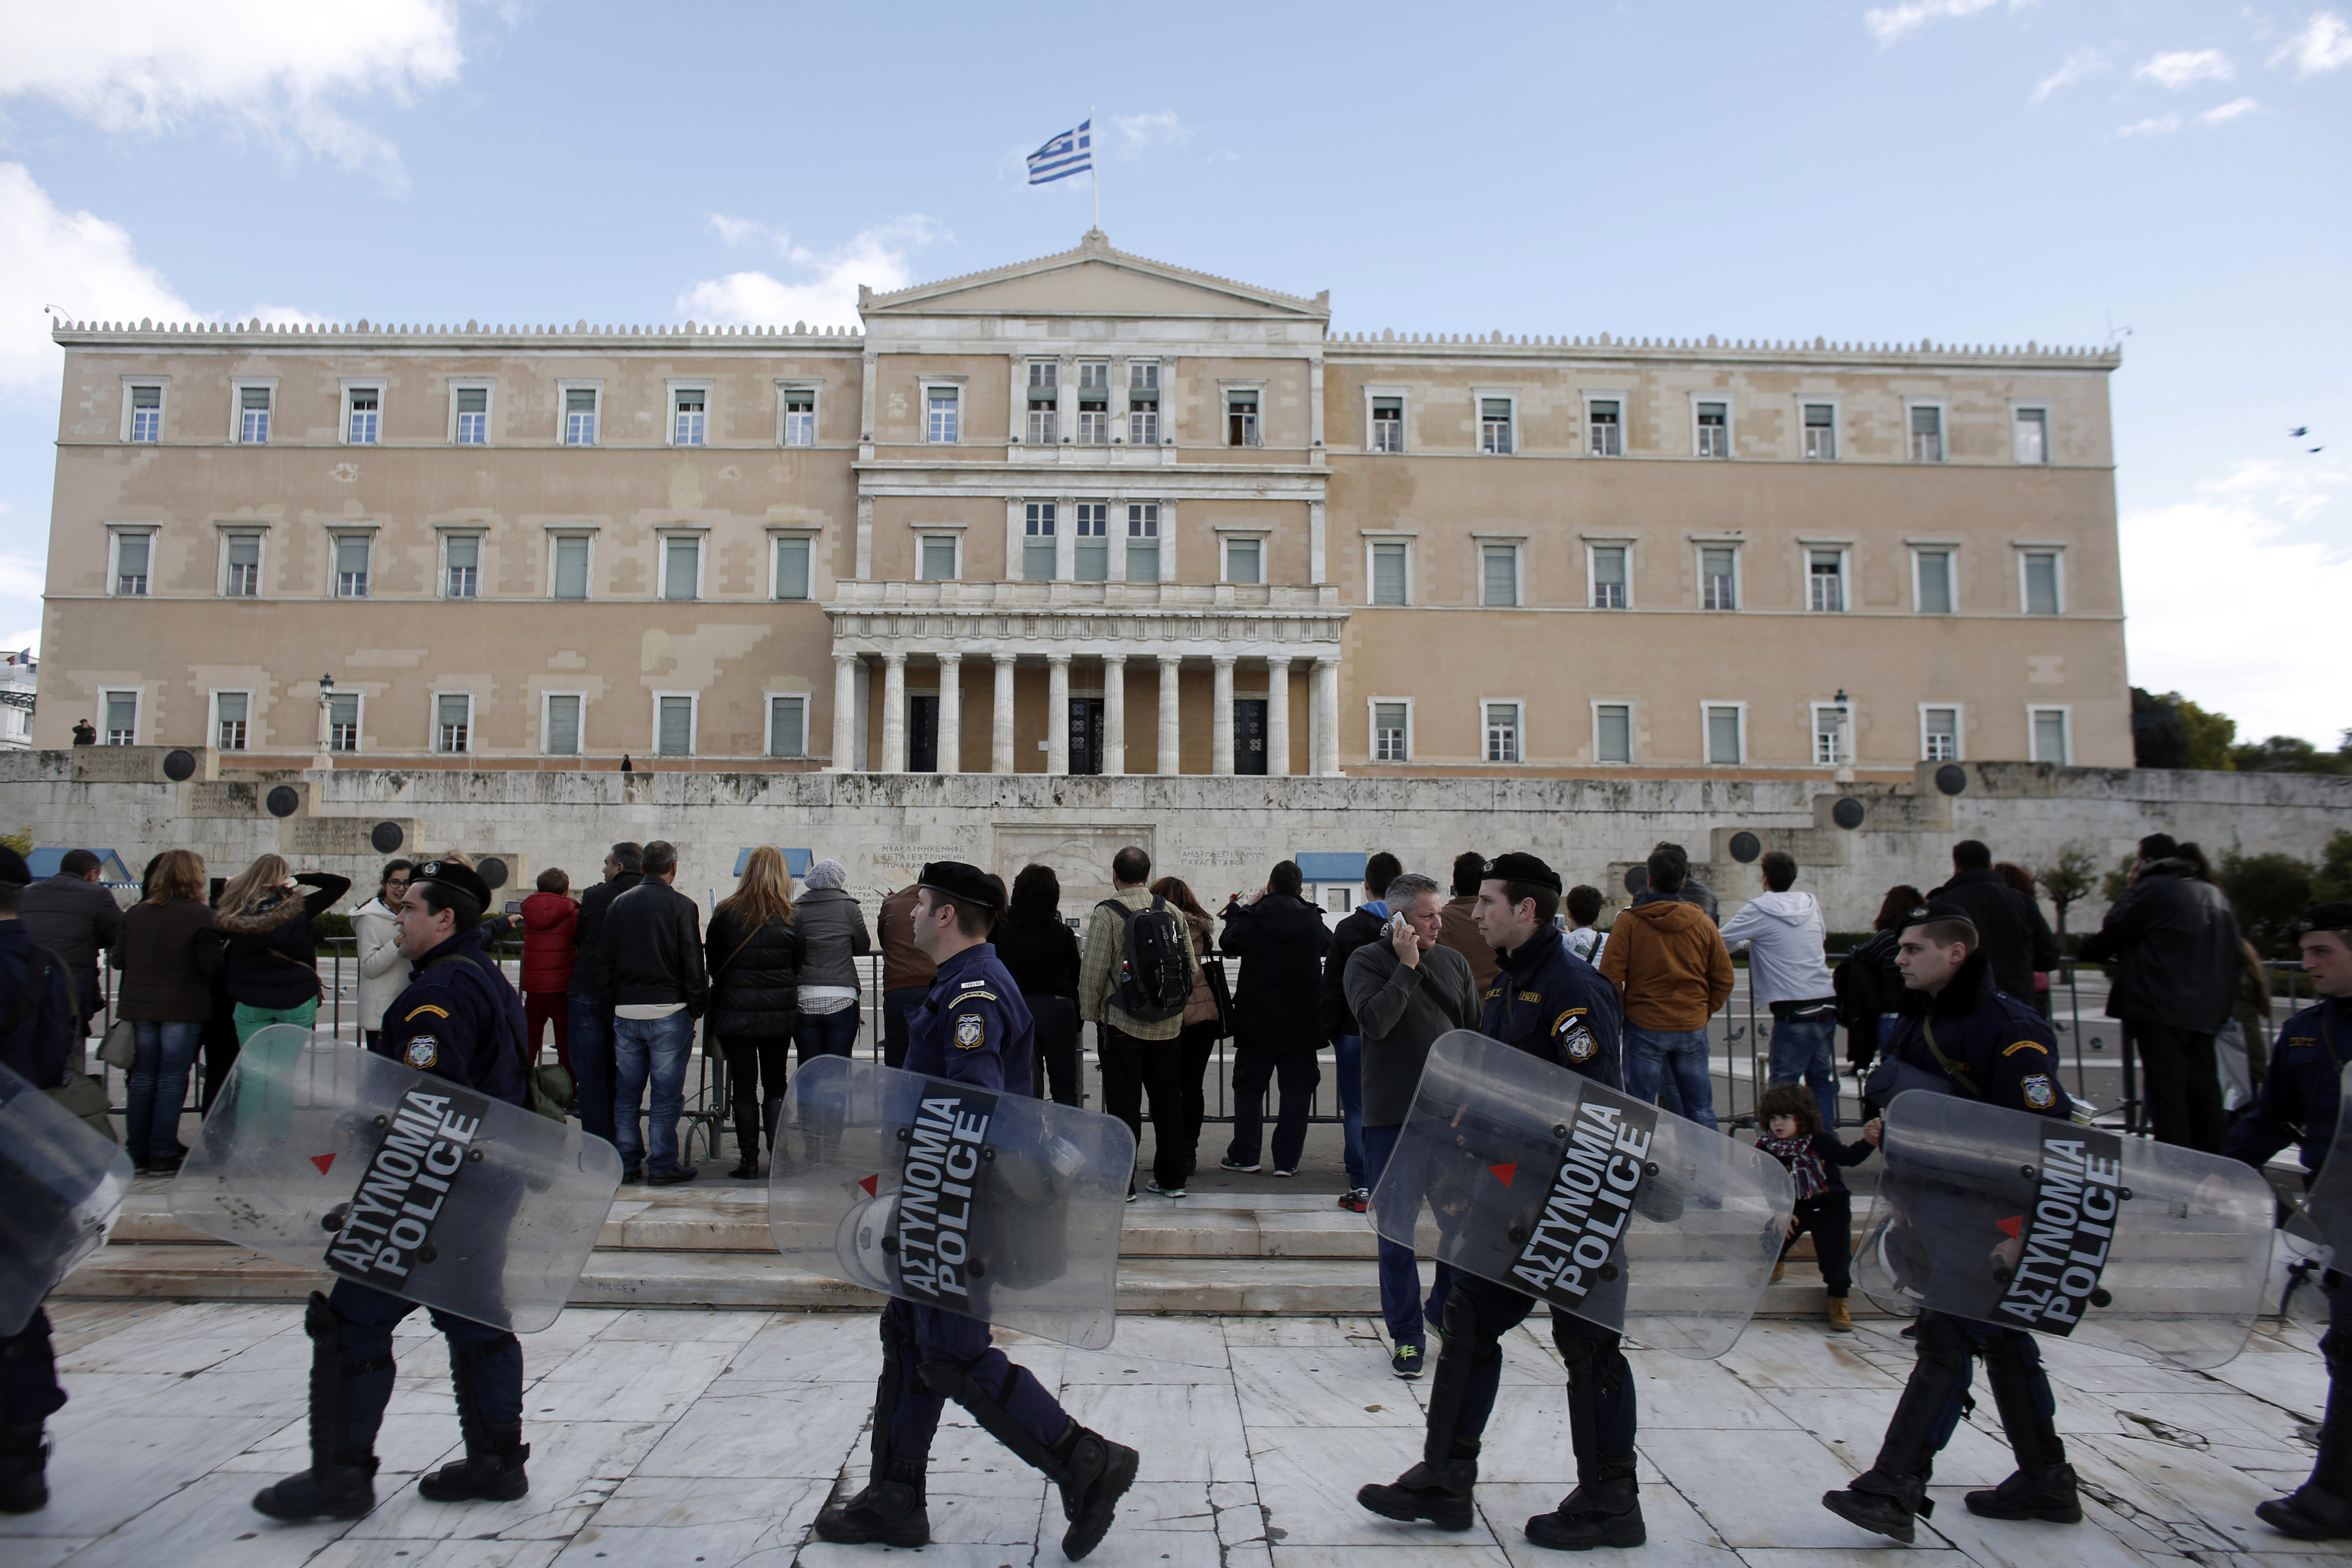 Riot police carry shields past tourists outside the parliament following a final vote by lawmakers for a new Greek president in Athens, Greece, on Monday, Dec. 29, 2014. Greece faces snap elections next month after Prime Minister Antonis Samaras failed in his third and final attempt to persuade parliament to back his candidate for head of state. Photographer: Kostas Tsironis/Bloomberg